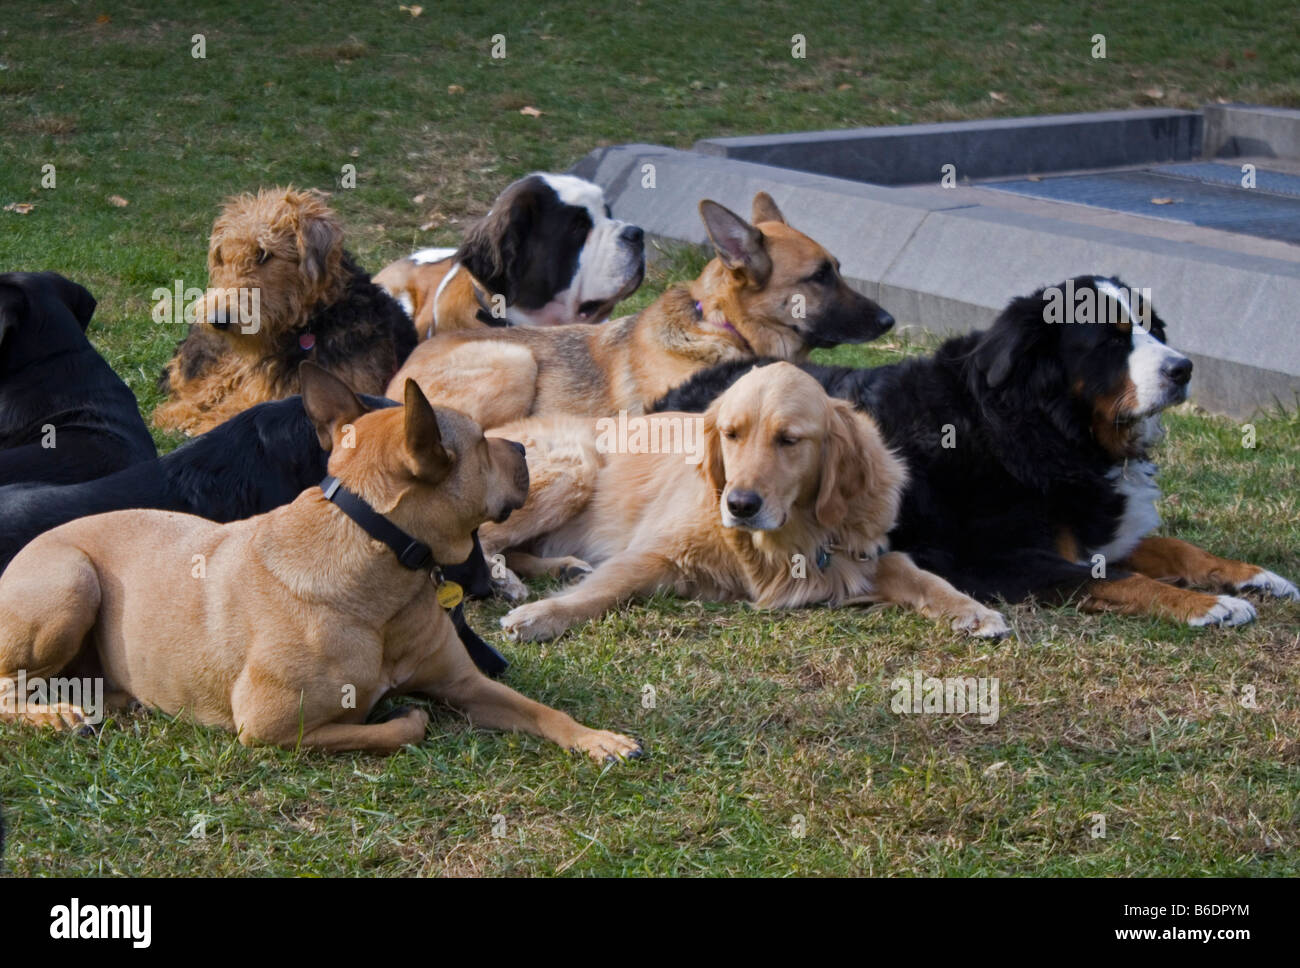 Dogs in Central Park - Stock Image